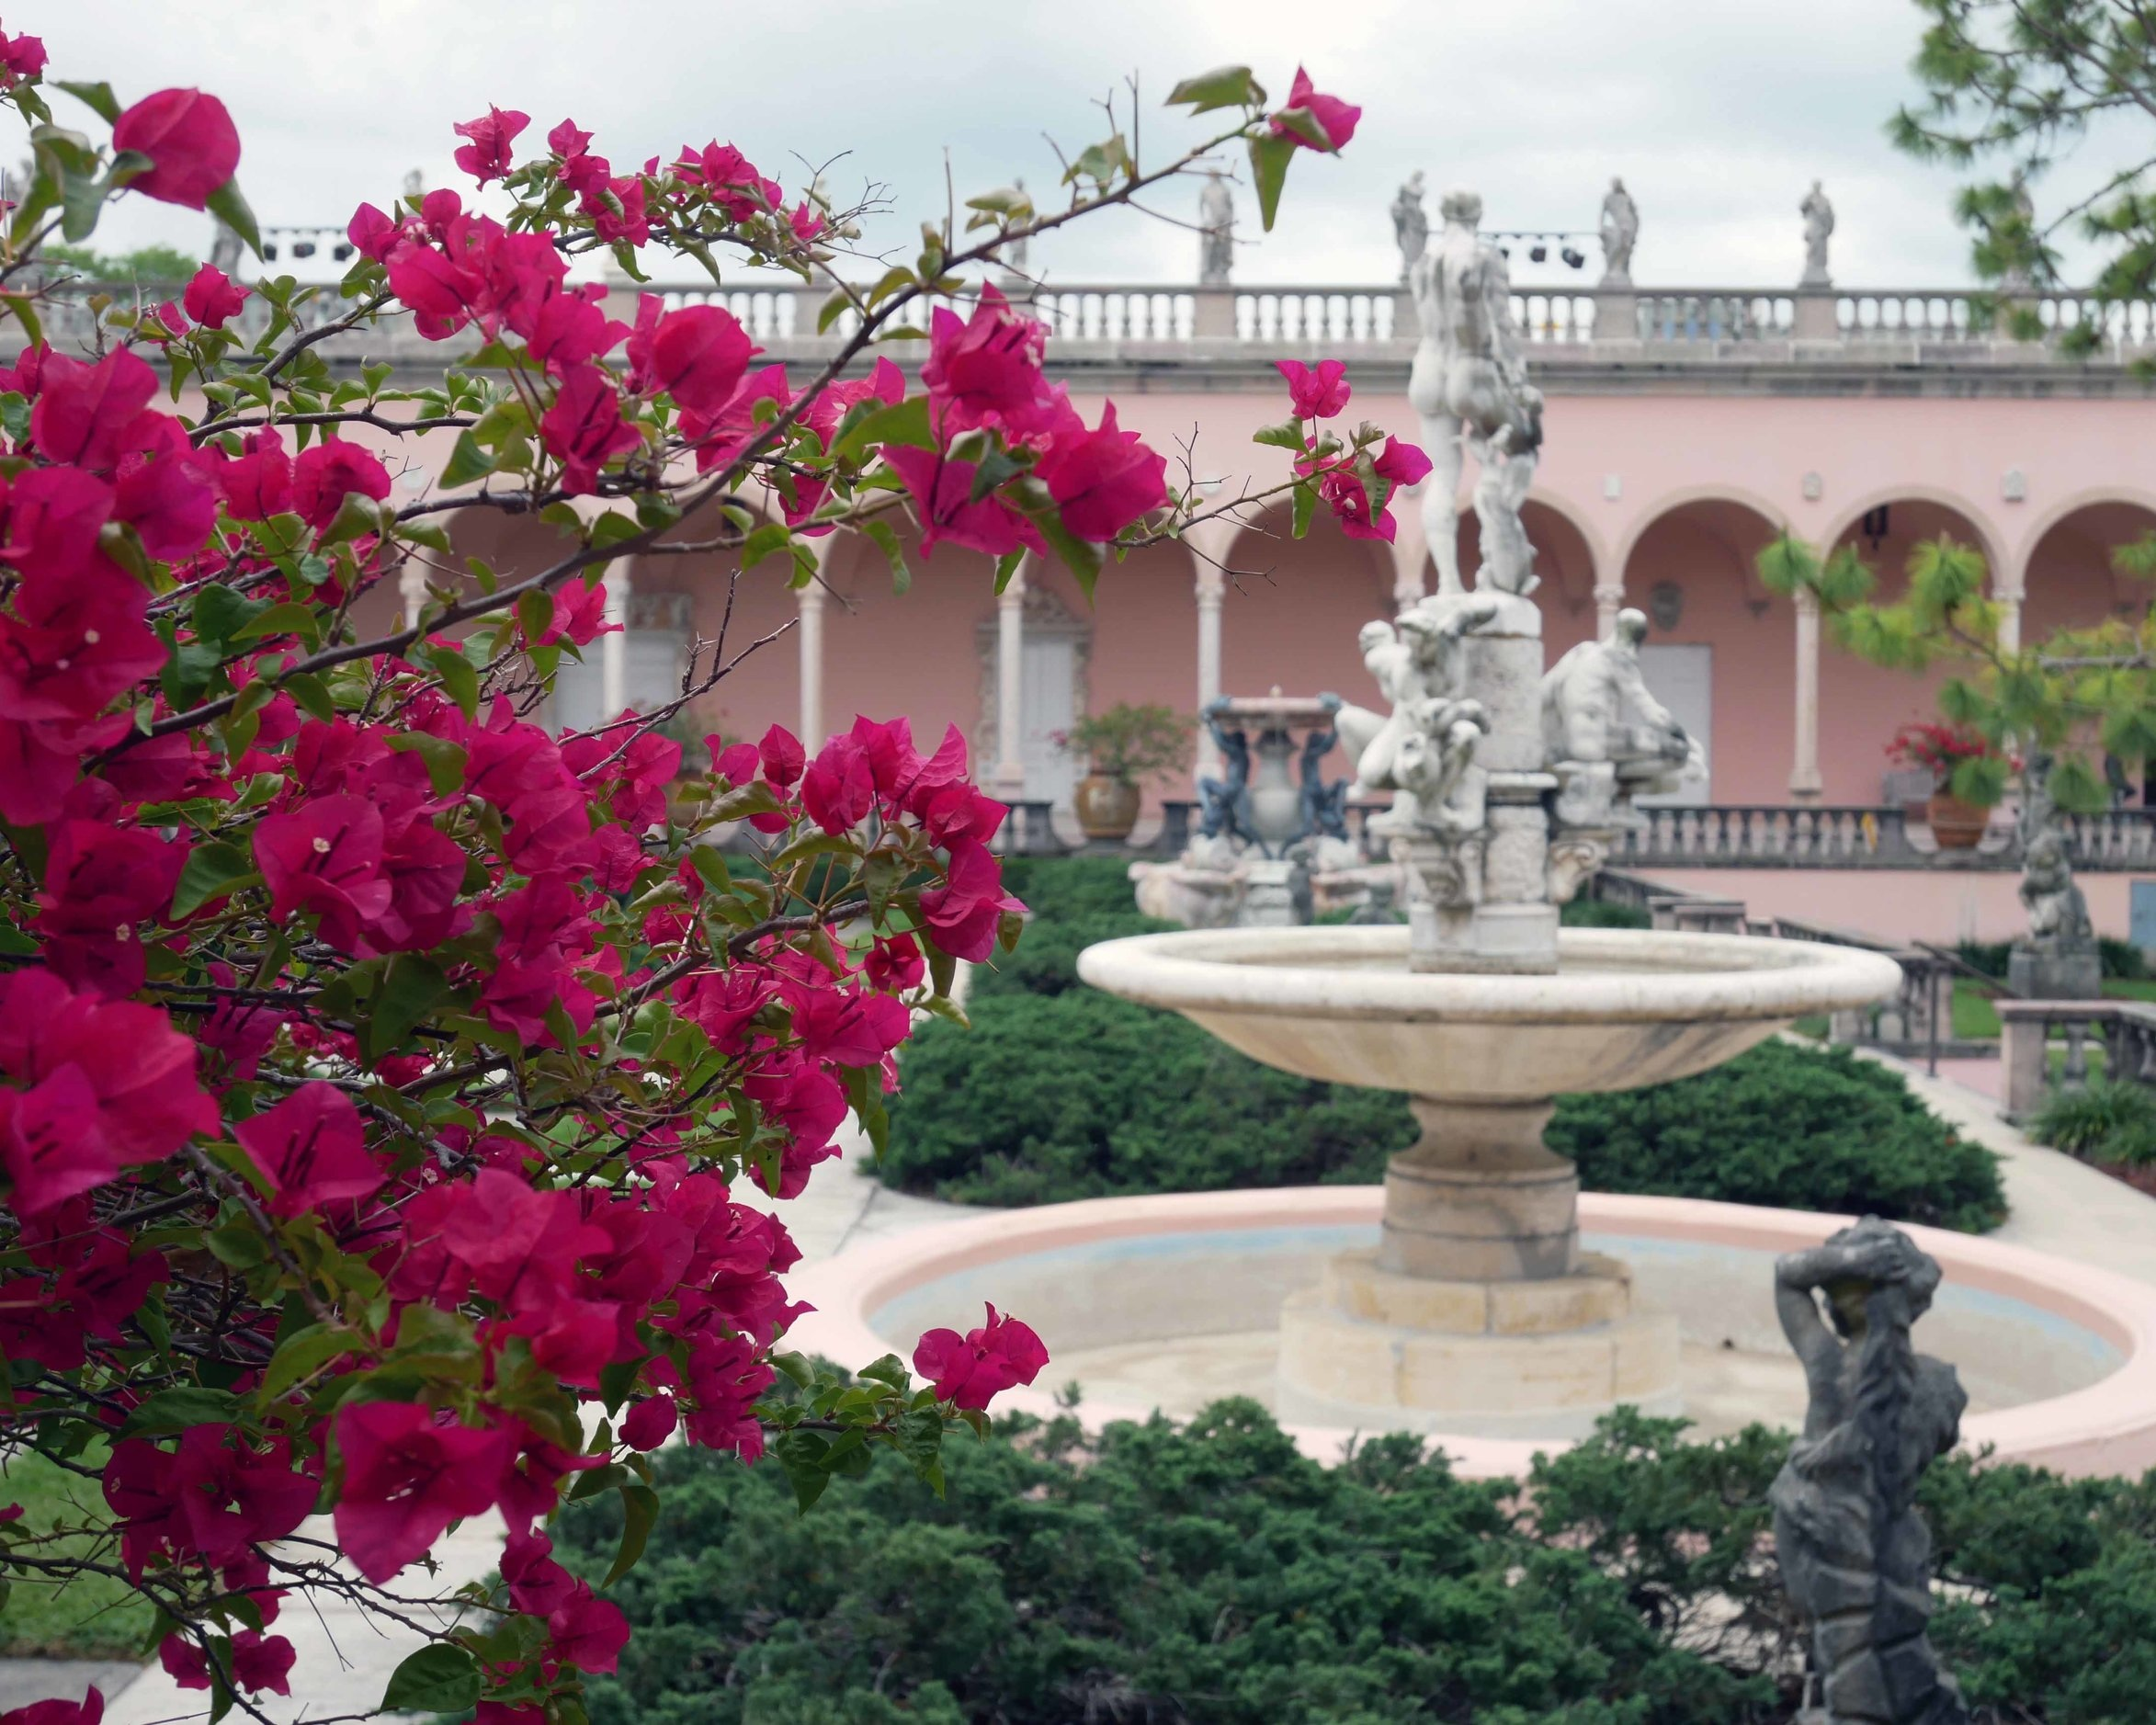 The beautiful grounds ar the Ringling Museum in Sarasota, Florida